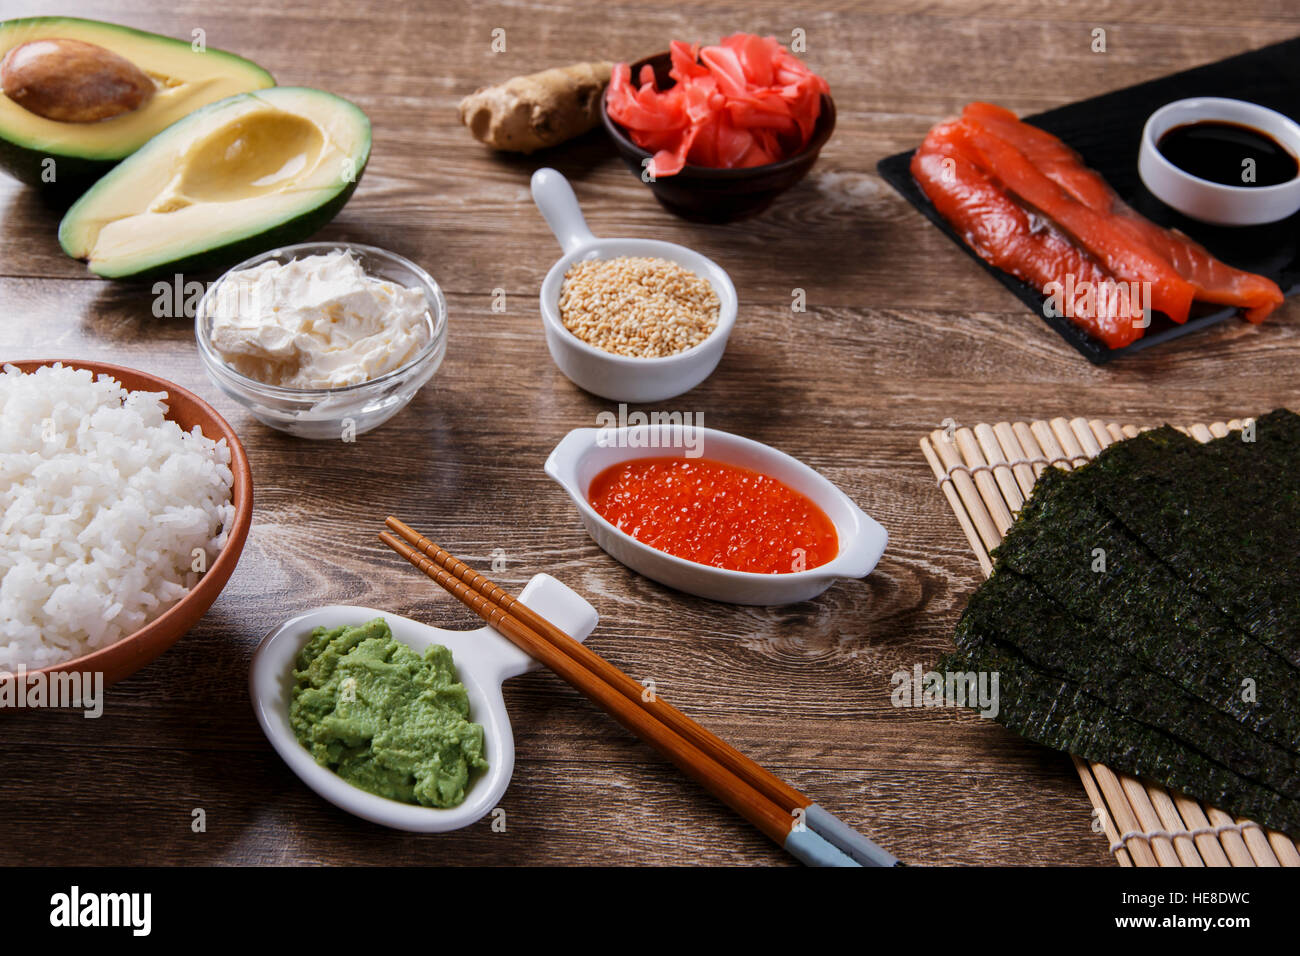 ingredients for sushi on a wooden table - Stock Image